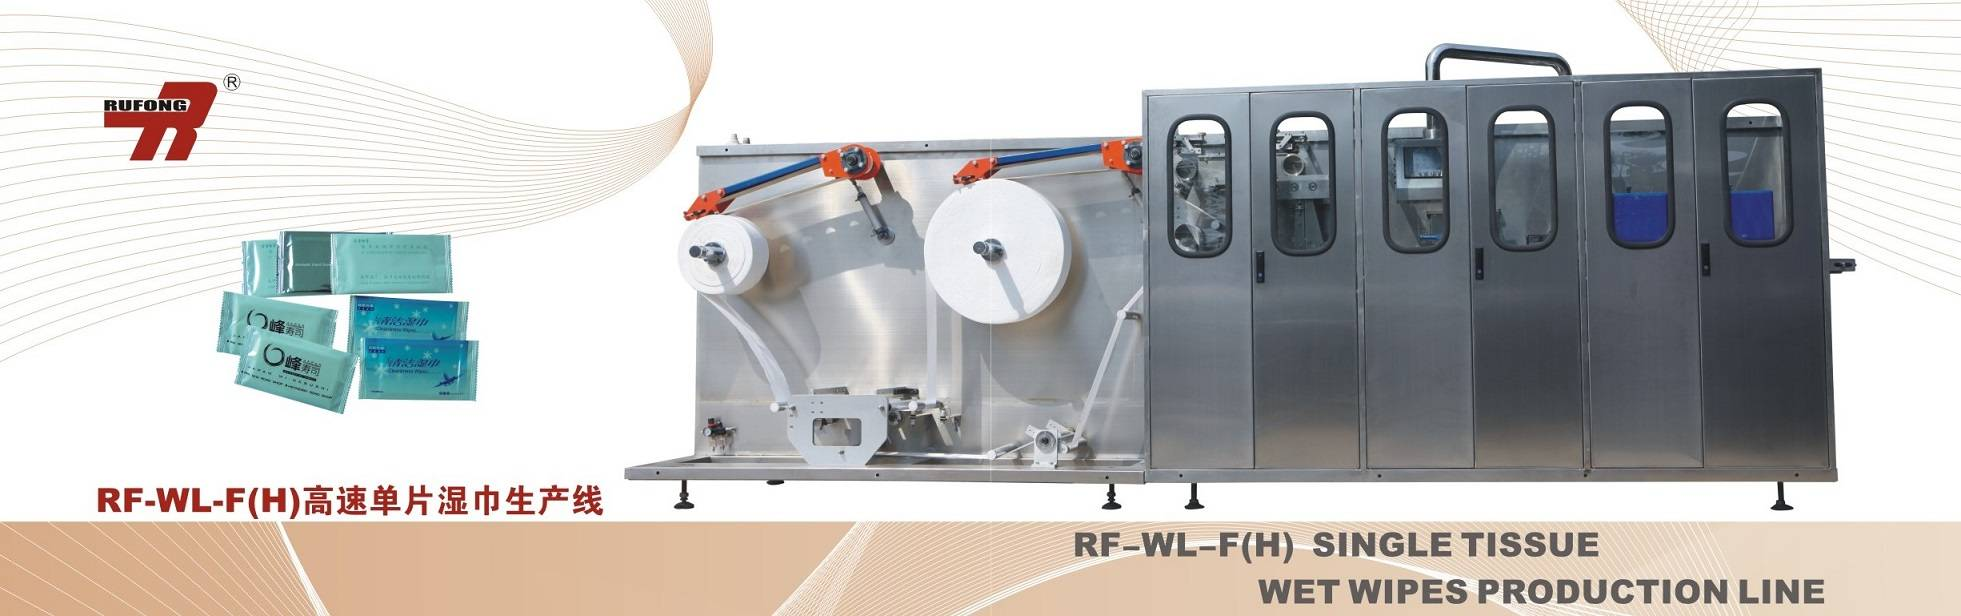 RF-WL-F(H) Single Tissue Wet Wipes Production Line